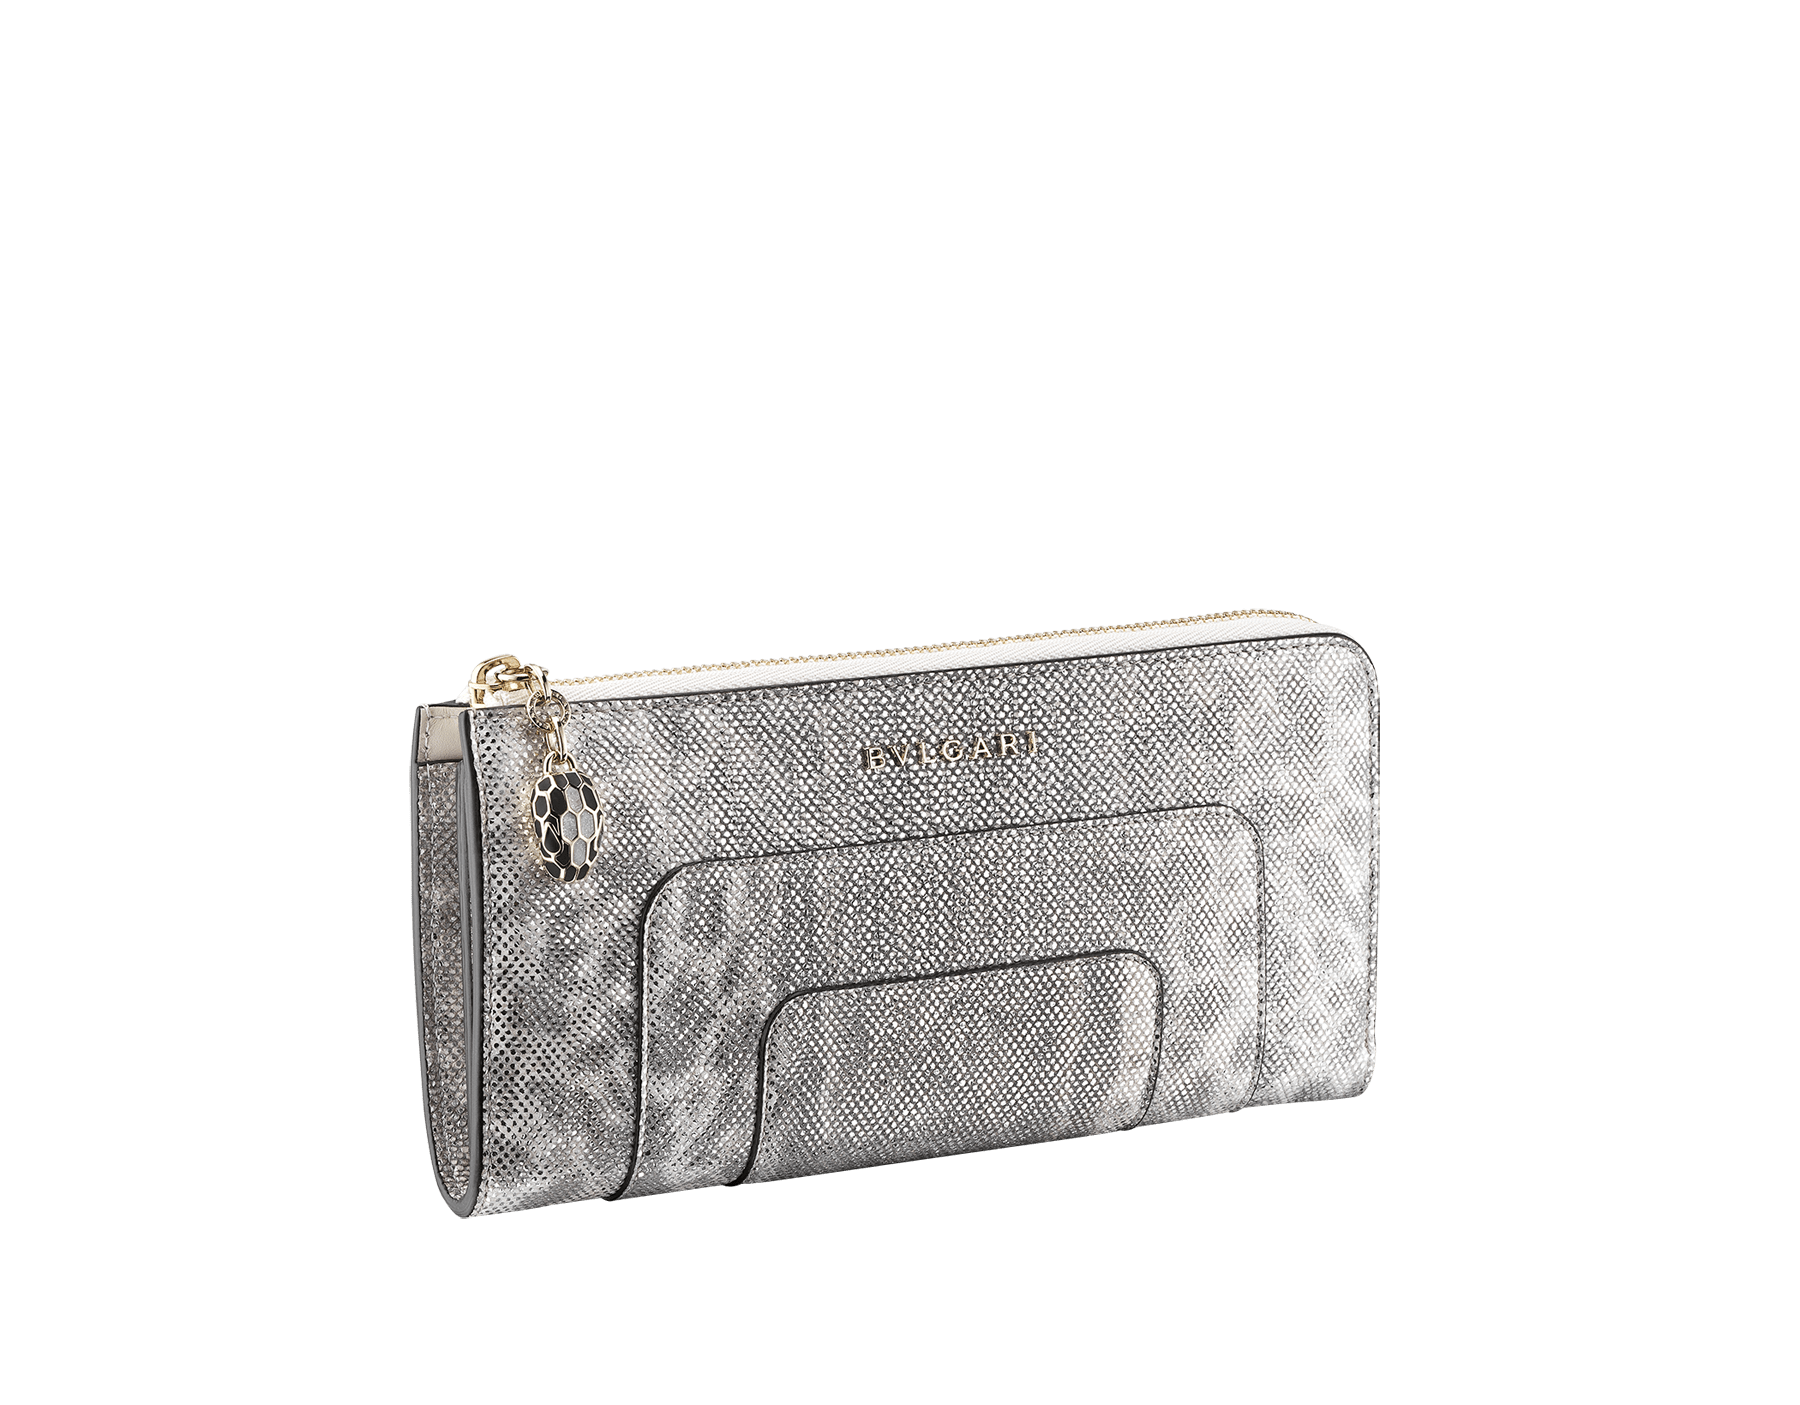 Serpenti Forever L-shaped zipped wallet in ruby red metallic karung skin and calf leather. Iconic snakehead zip puller in black and glitter silver enamel, with black enamel eyes SEA-WLT-MZP-SLIM-L-MK image 1